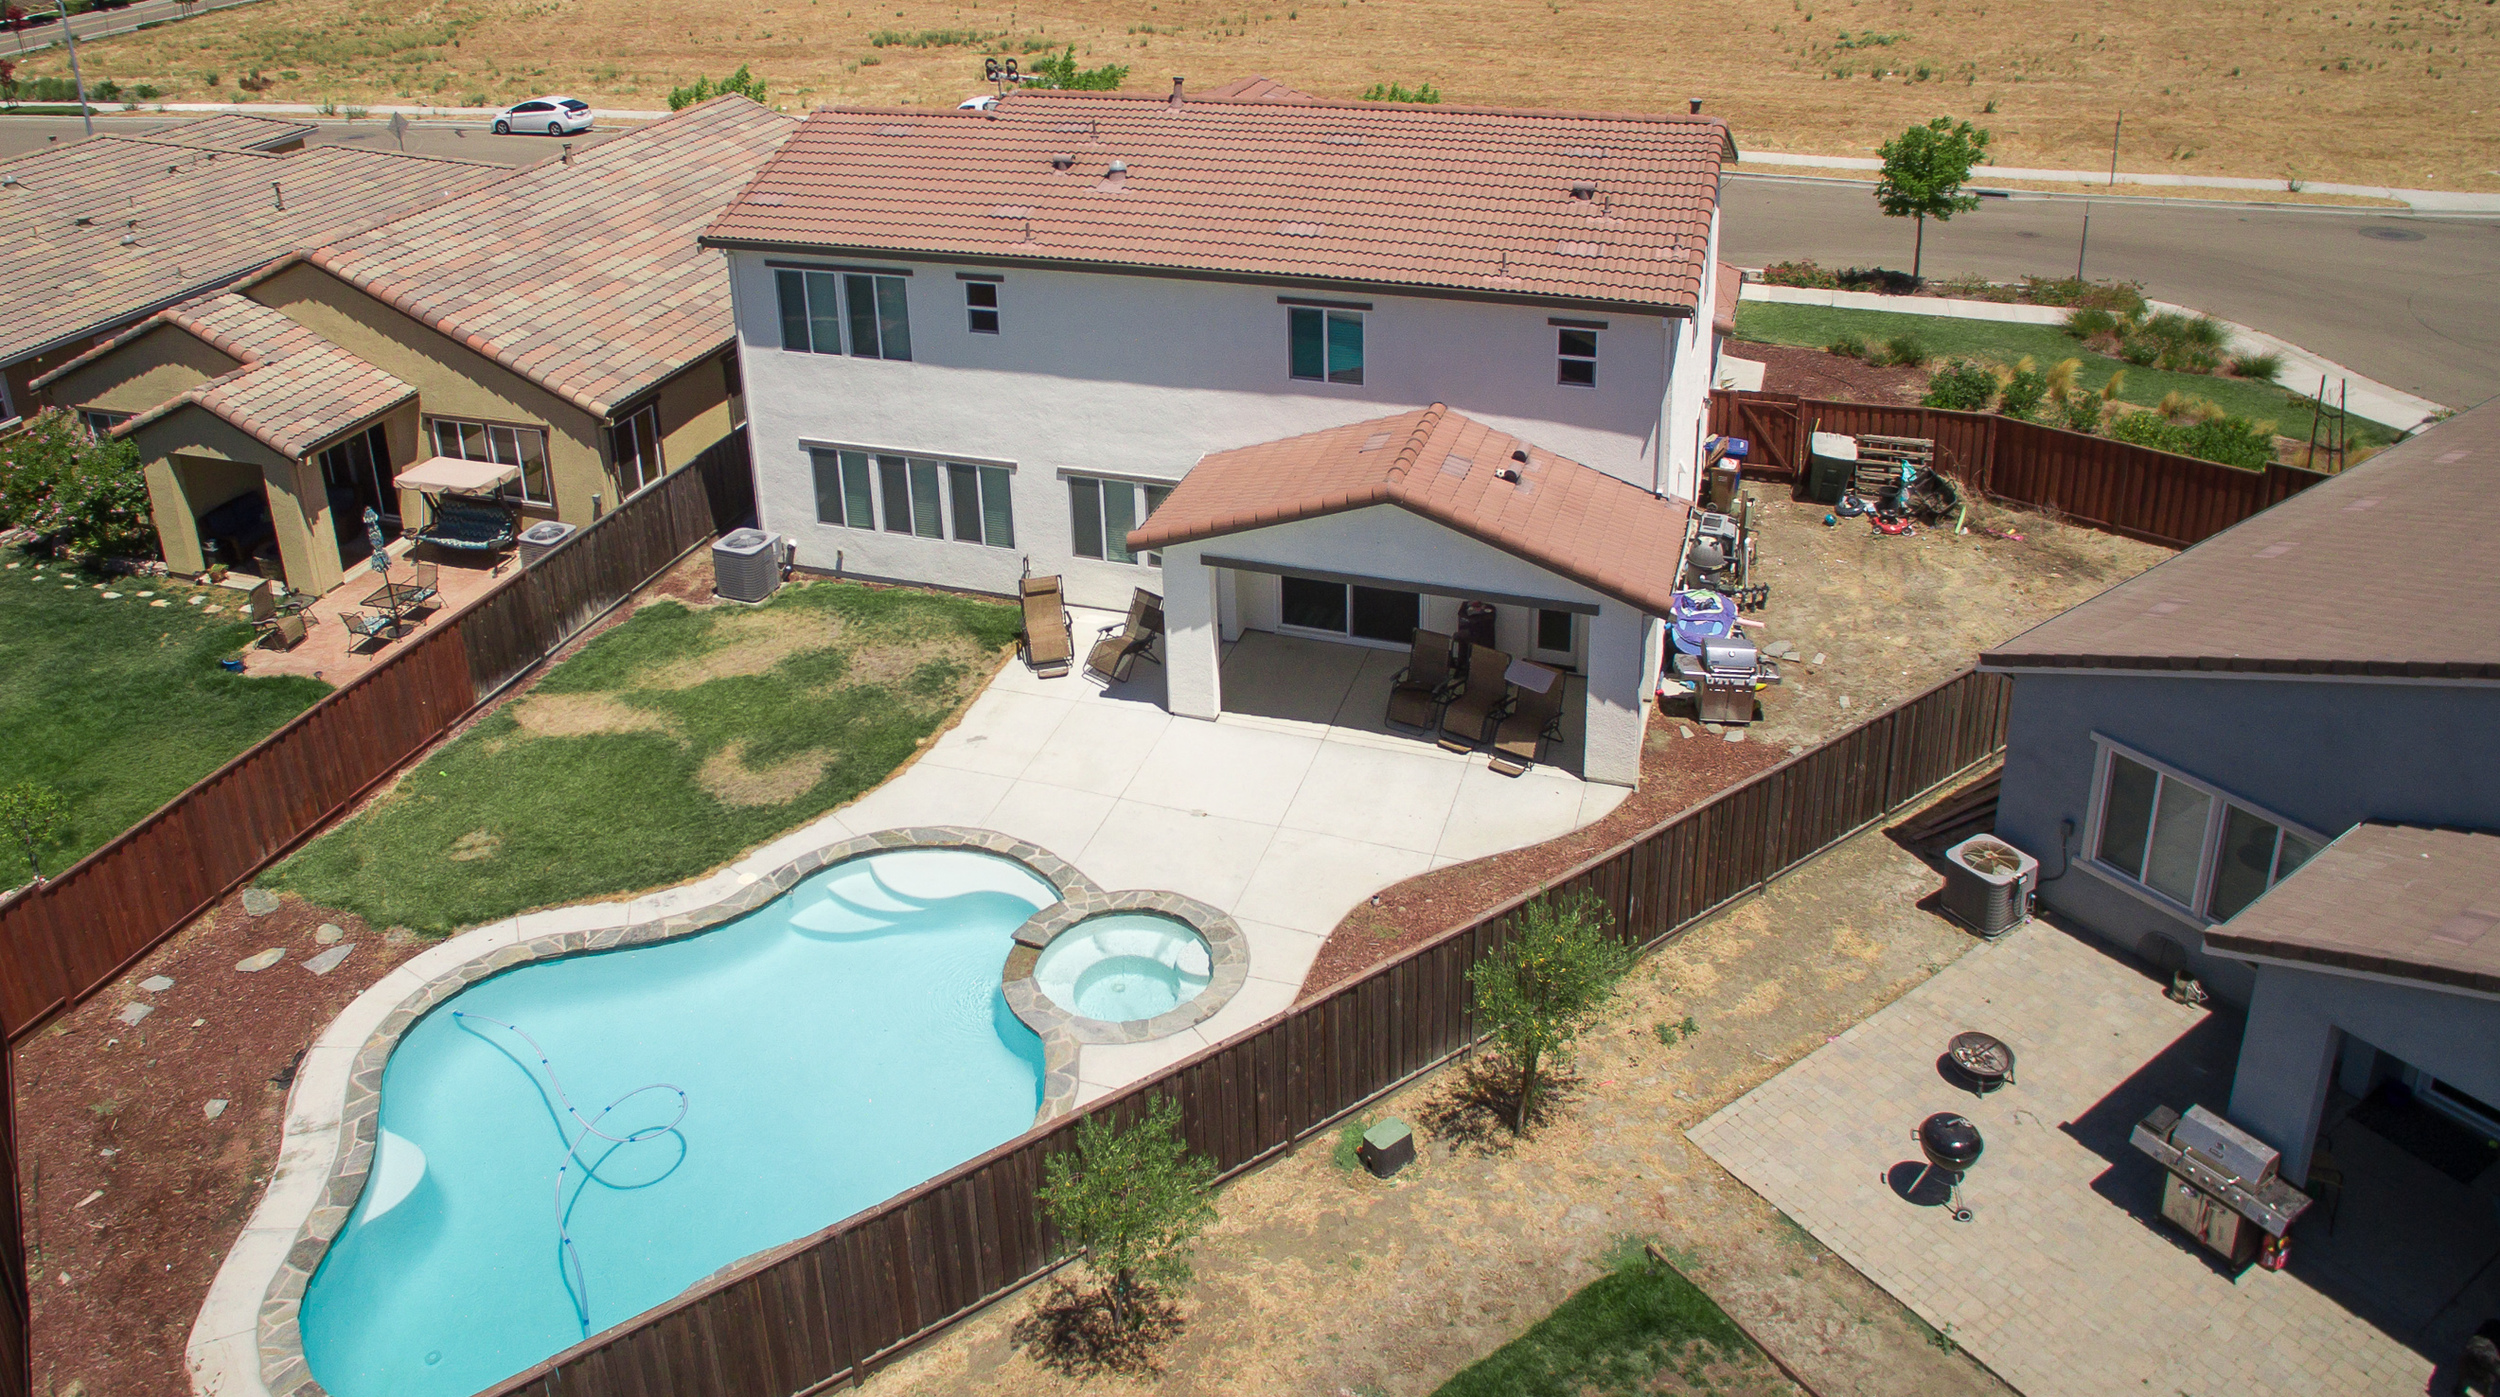 334 Watchtide Way - aerial_5.jpg